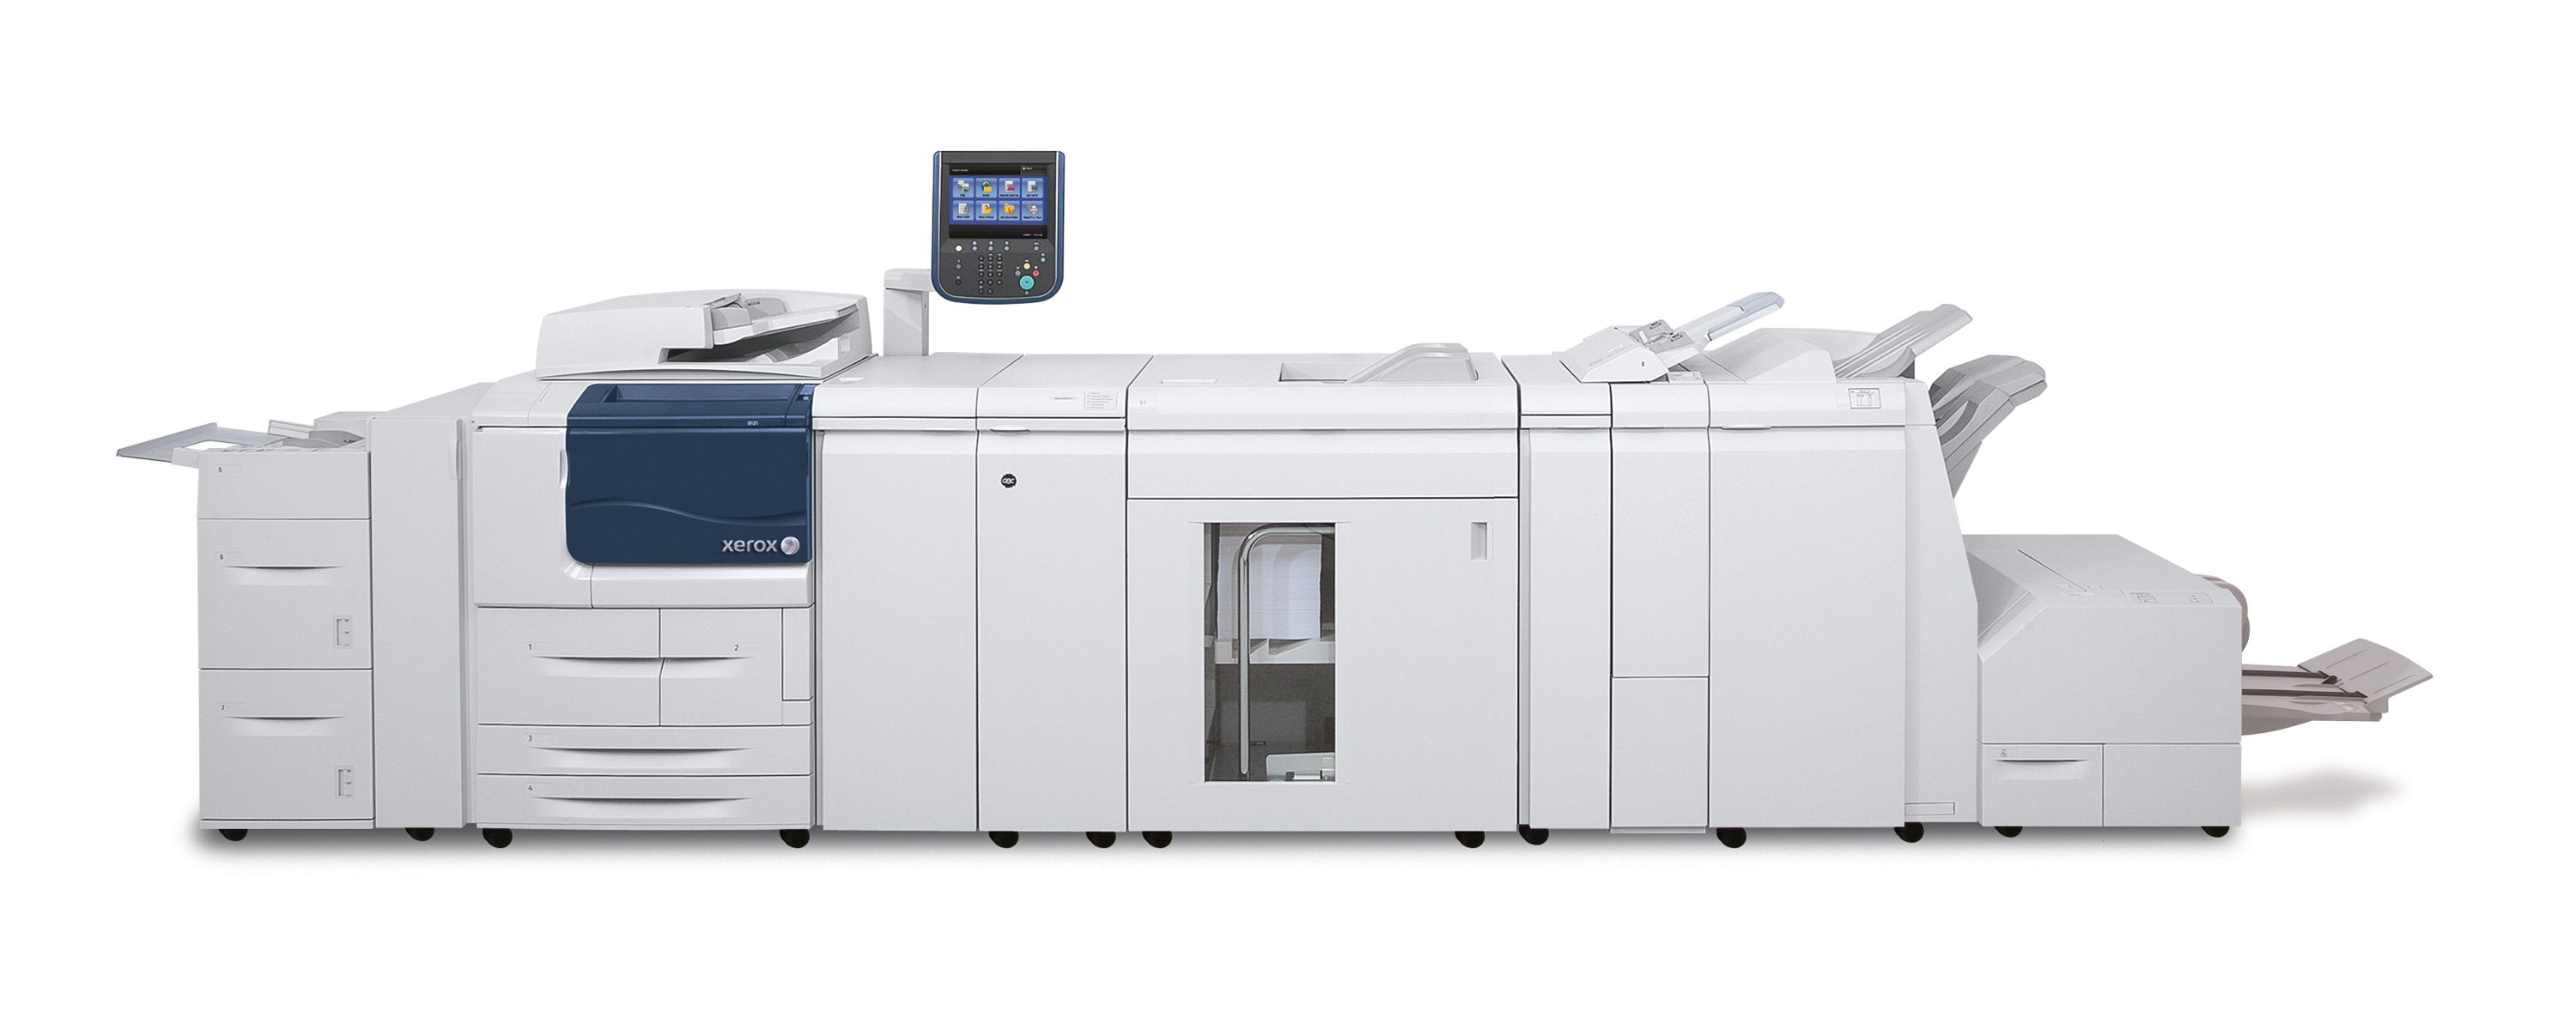 Pin by Smart Print on Xerox D95/D110/D125 copier and printer